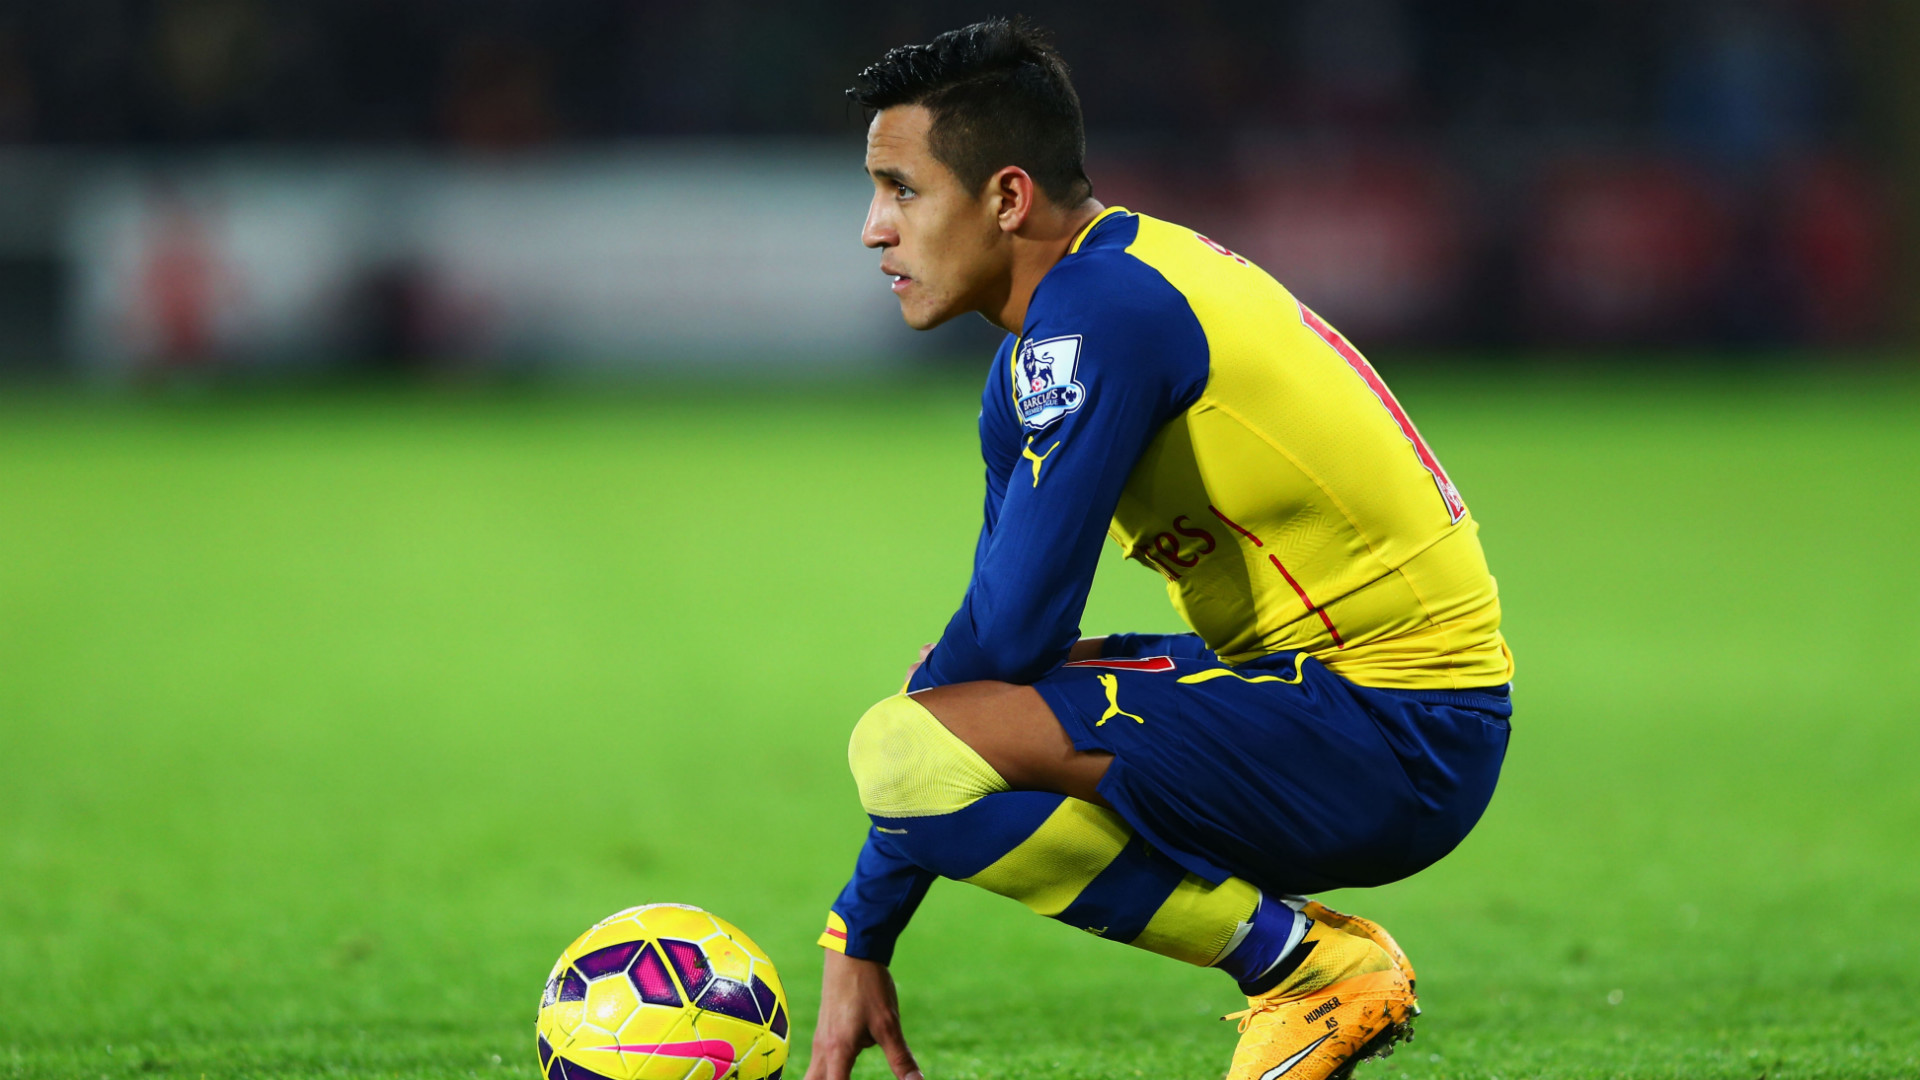 http://i1.wp.com/images.performgroup.com/di/library/goal_uk/bd/8d/alexis-sanchez-arsenal_1ugbdwu9wjl5q1xeeb22nukr4c.jpg